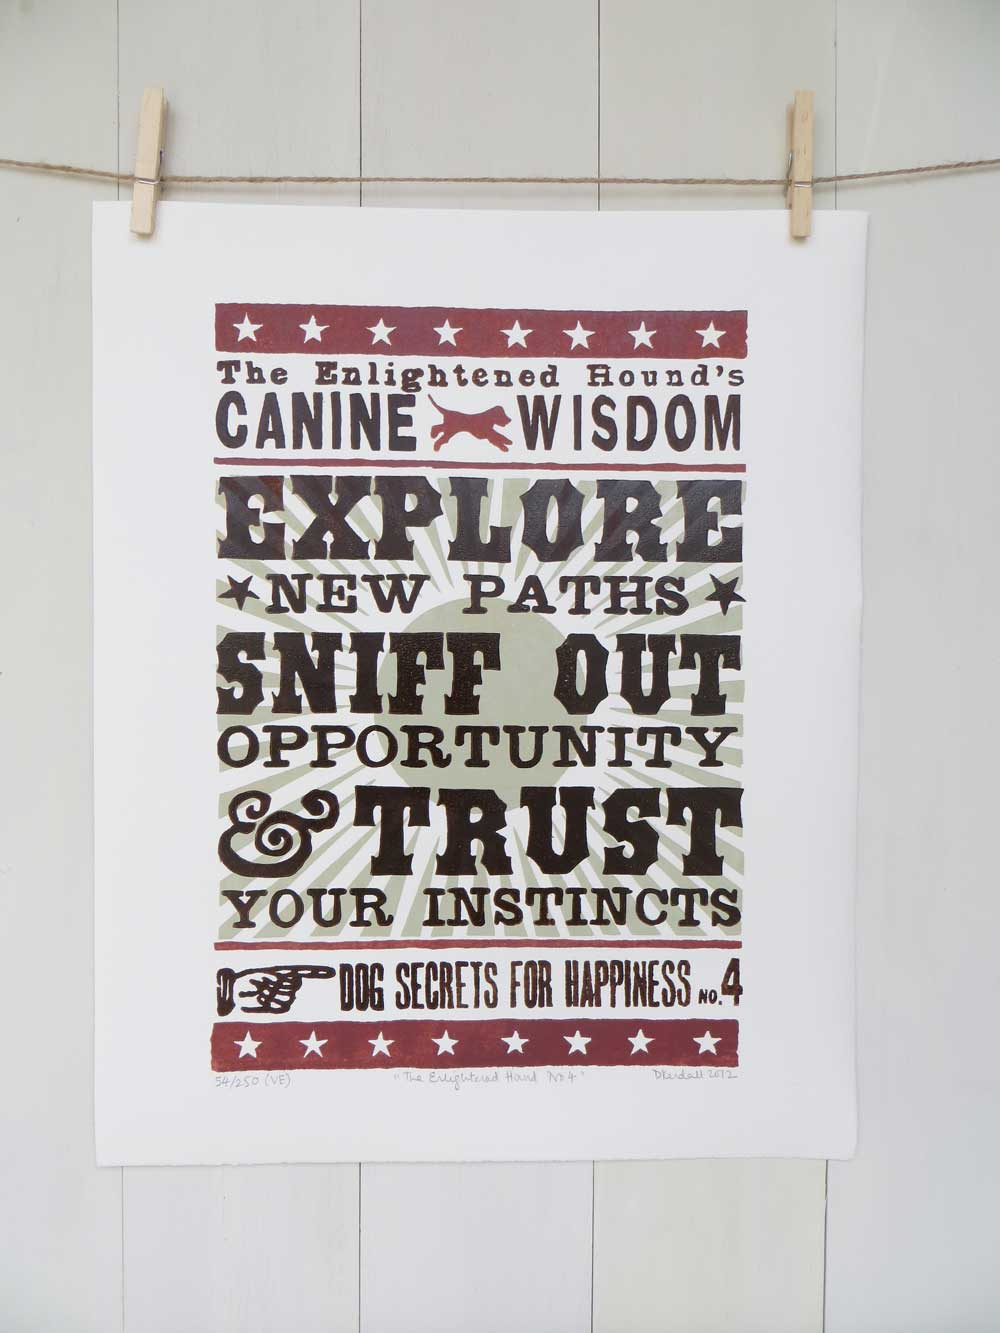 Inspirational Dog Sayings Prints No4 - The Enlightened Hound